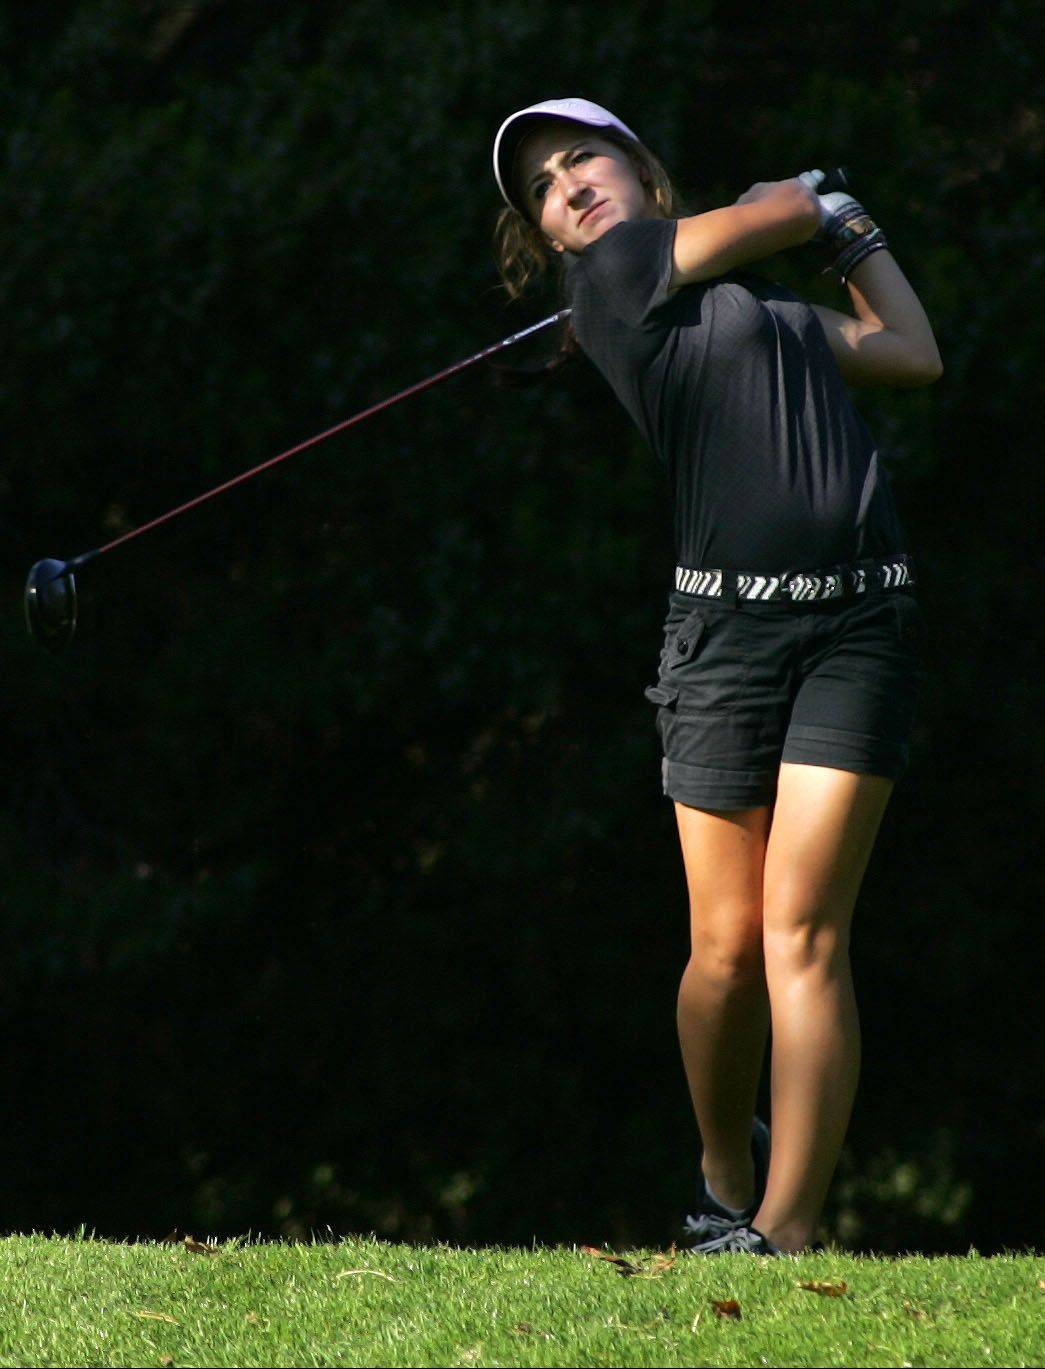 St. Charles North coach Chris Patrick has high praise for senior Ariana Furrie, pictured above, saying his No. 1 golfer has a chance to finish as one of the best players ever to tee it up for the North Stars.